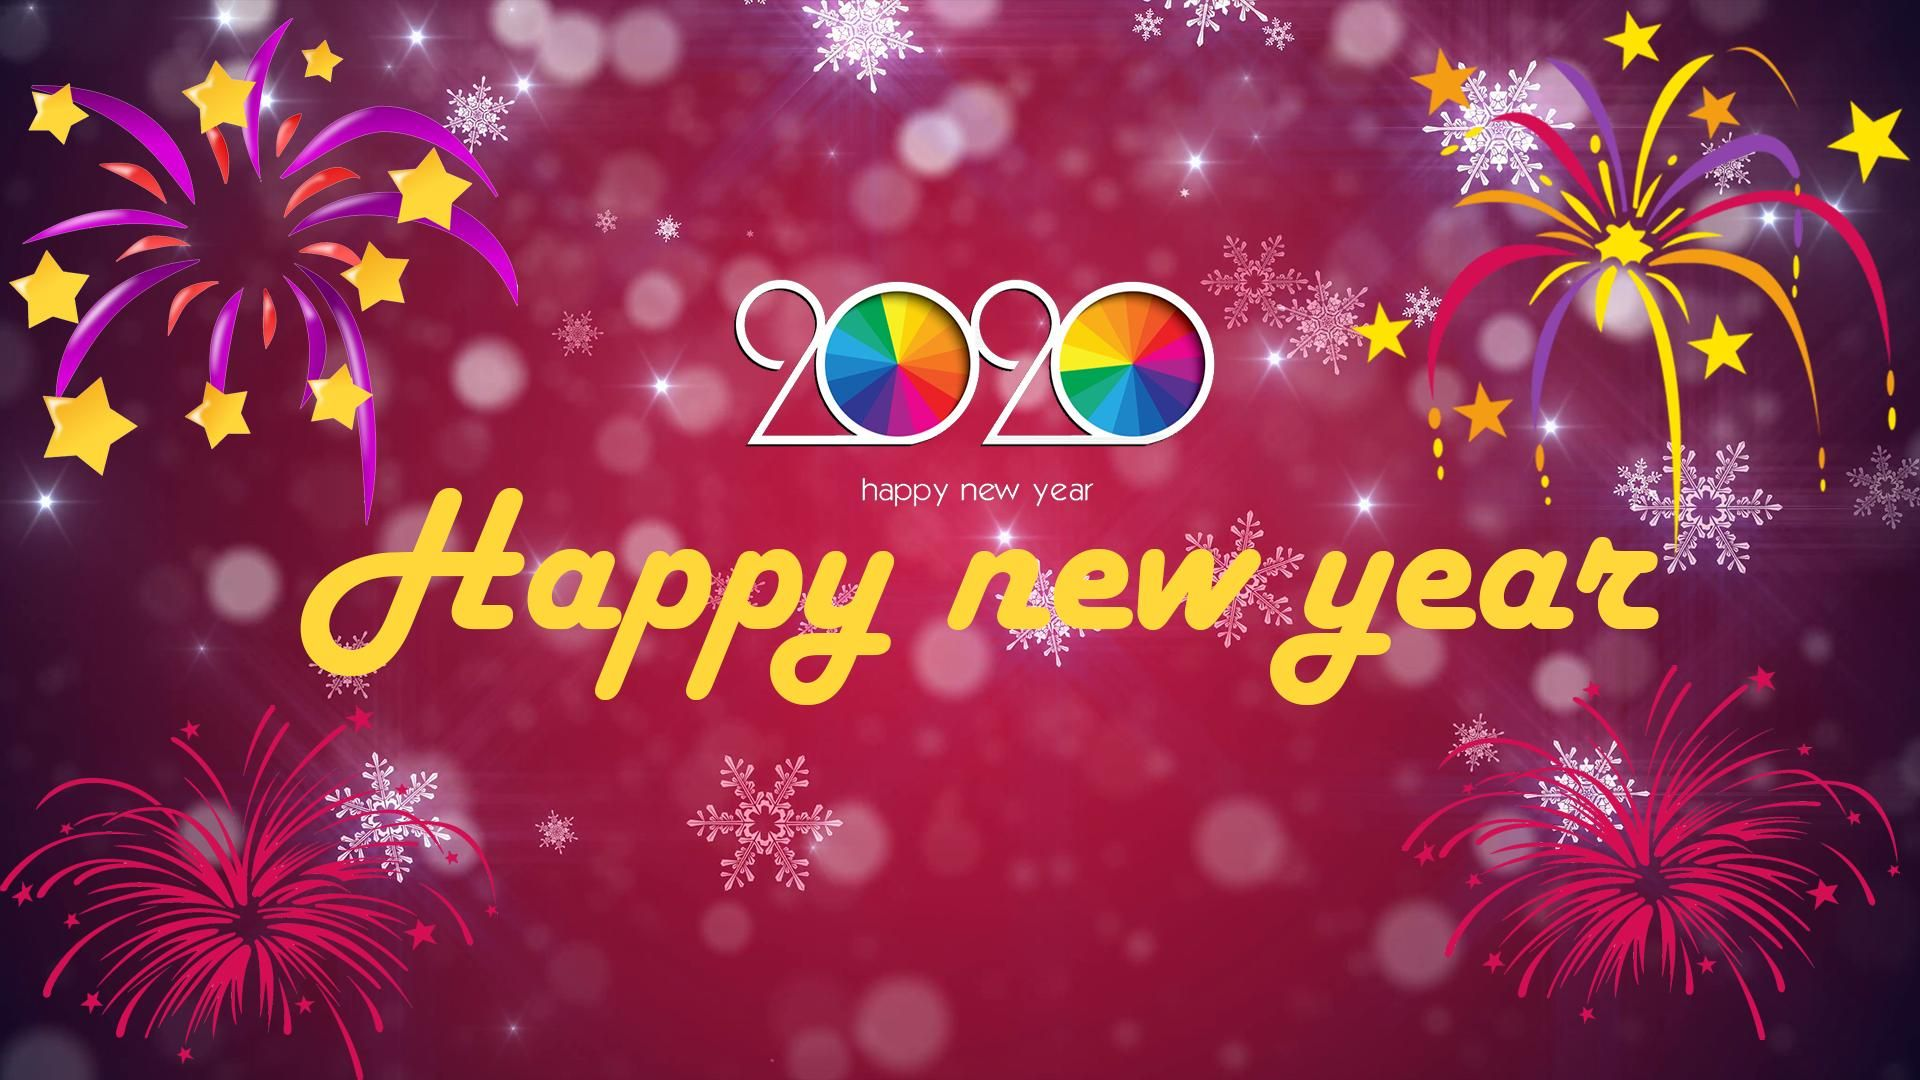 Happy New Year 2020 hd wallpaper 1080